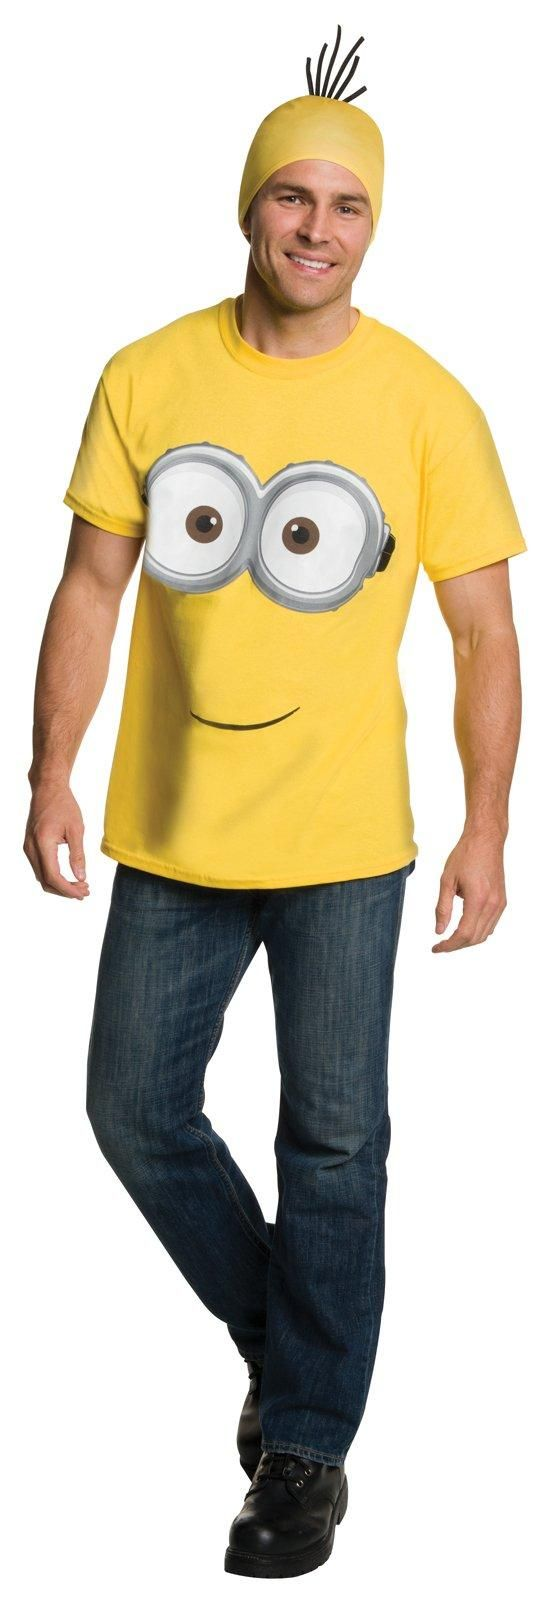 Not ready to go totally yellow? This Minions Movie: Adult Minion Shirt and Headpiece will help ease the transition.